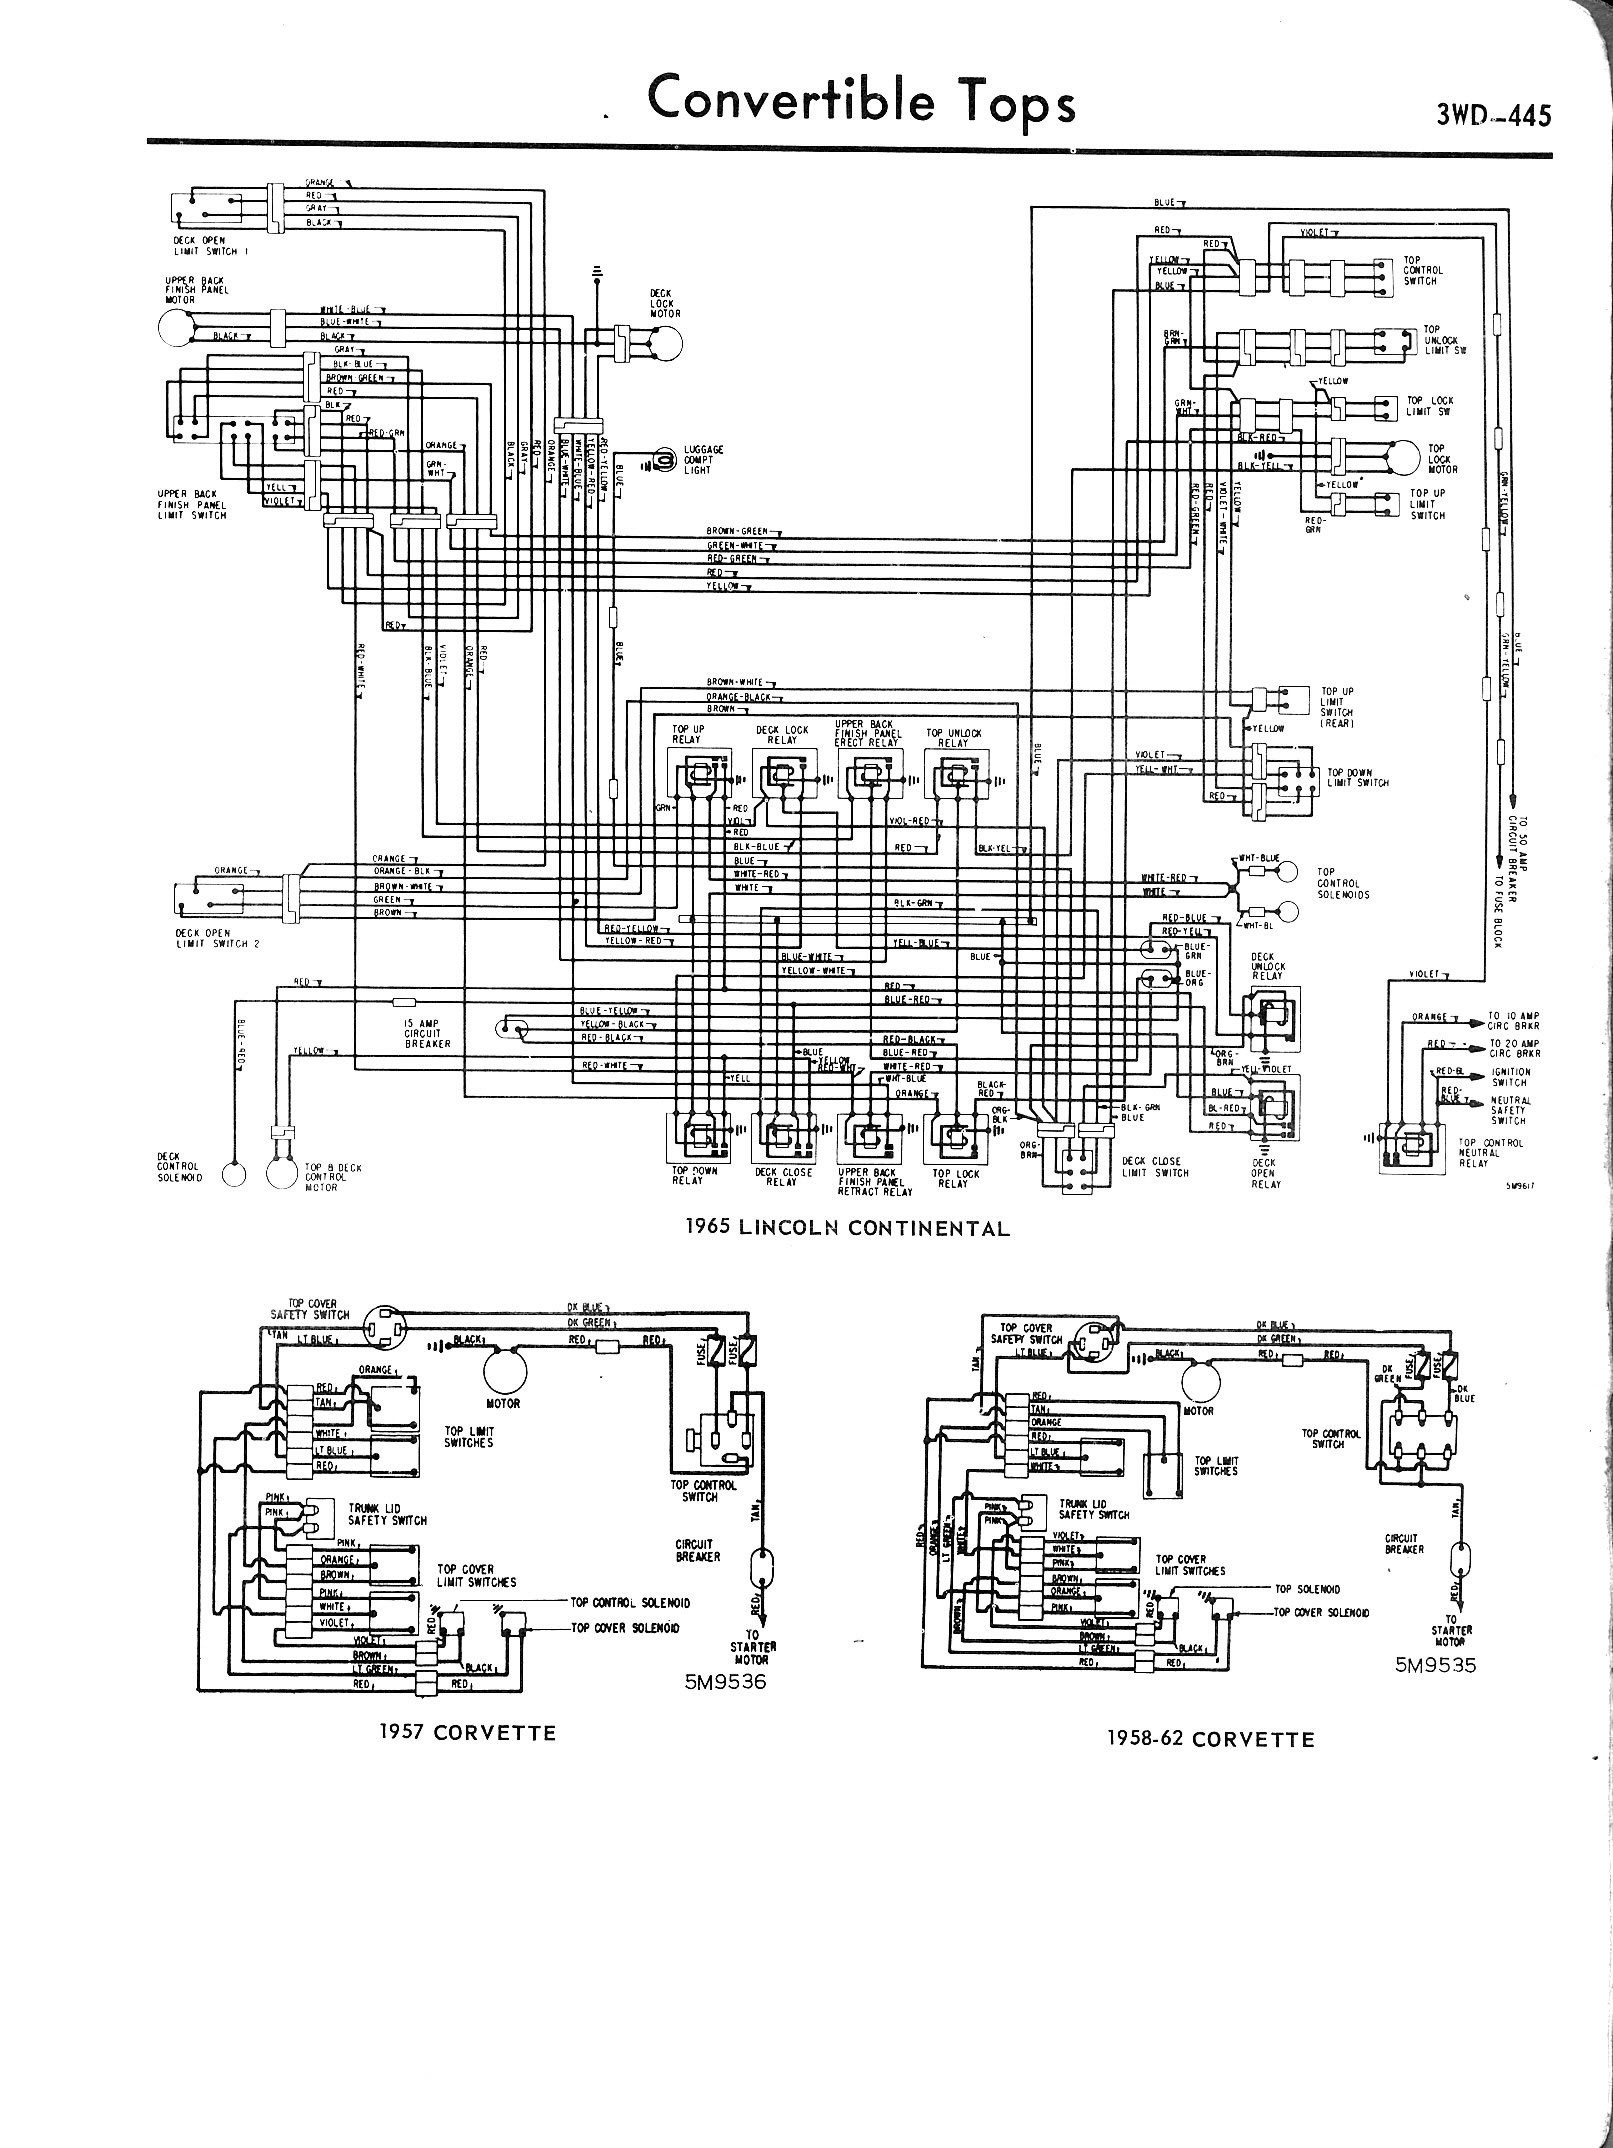 1962 Impala Convertible Top Wiring Diagram Electrical Images Gallery